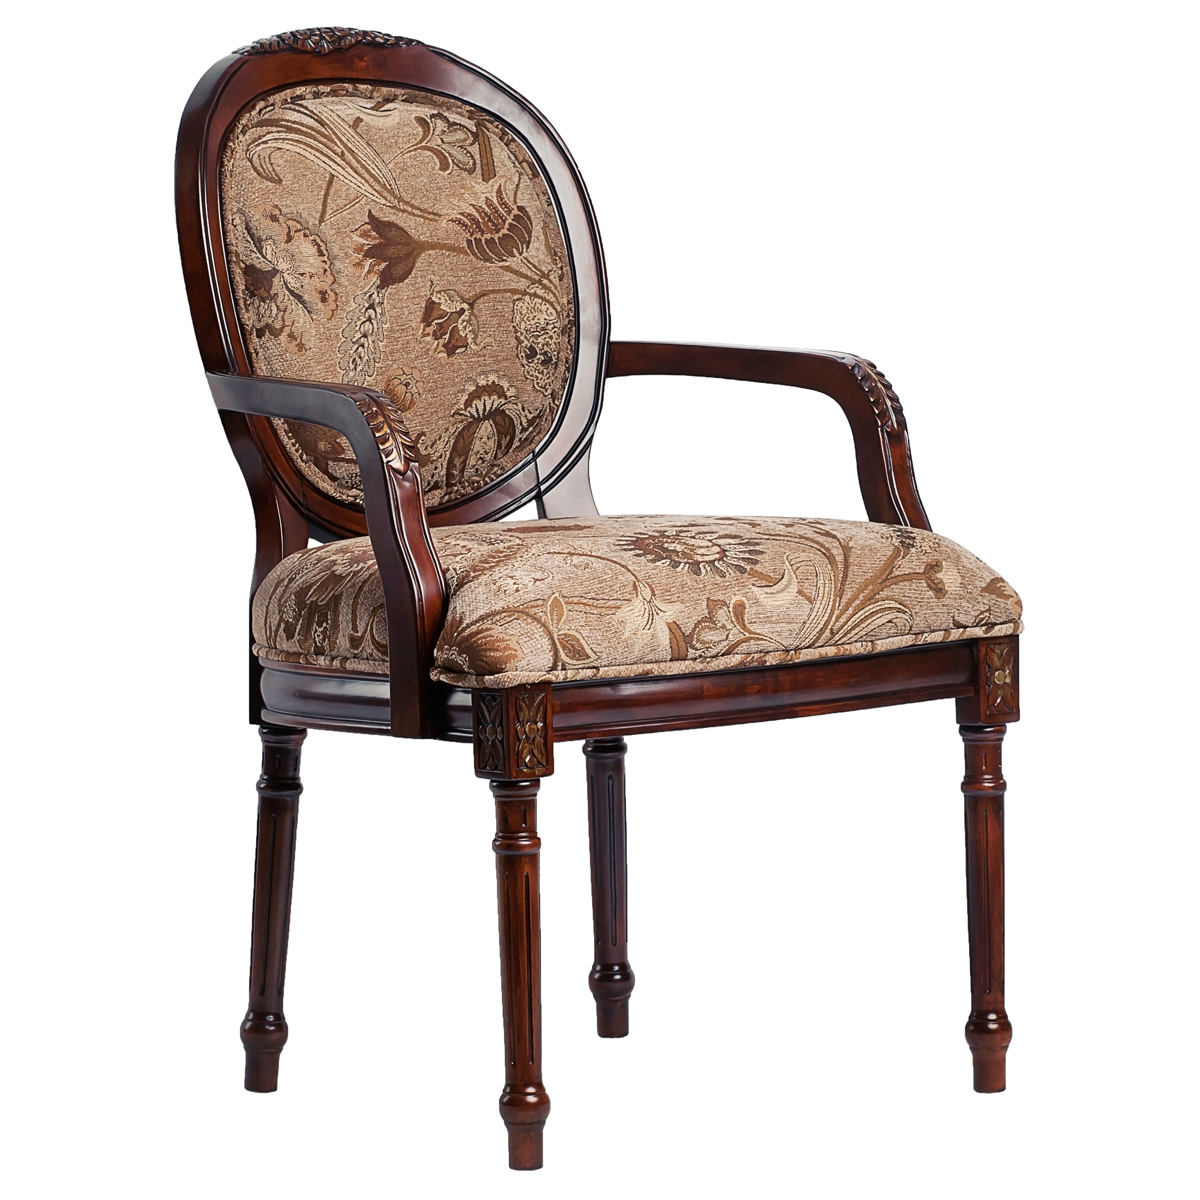 Belmont Accent Chair With Floral Chenille Seat And Back DCG Stores